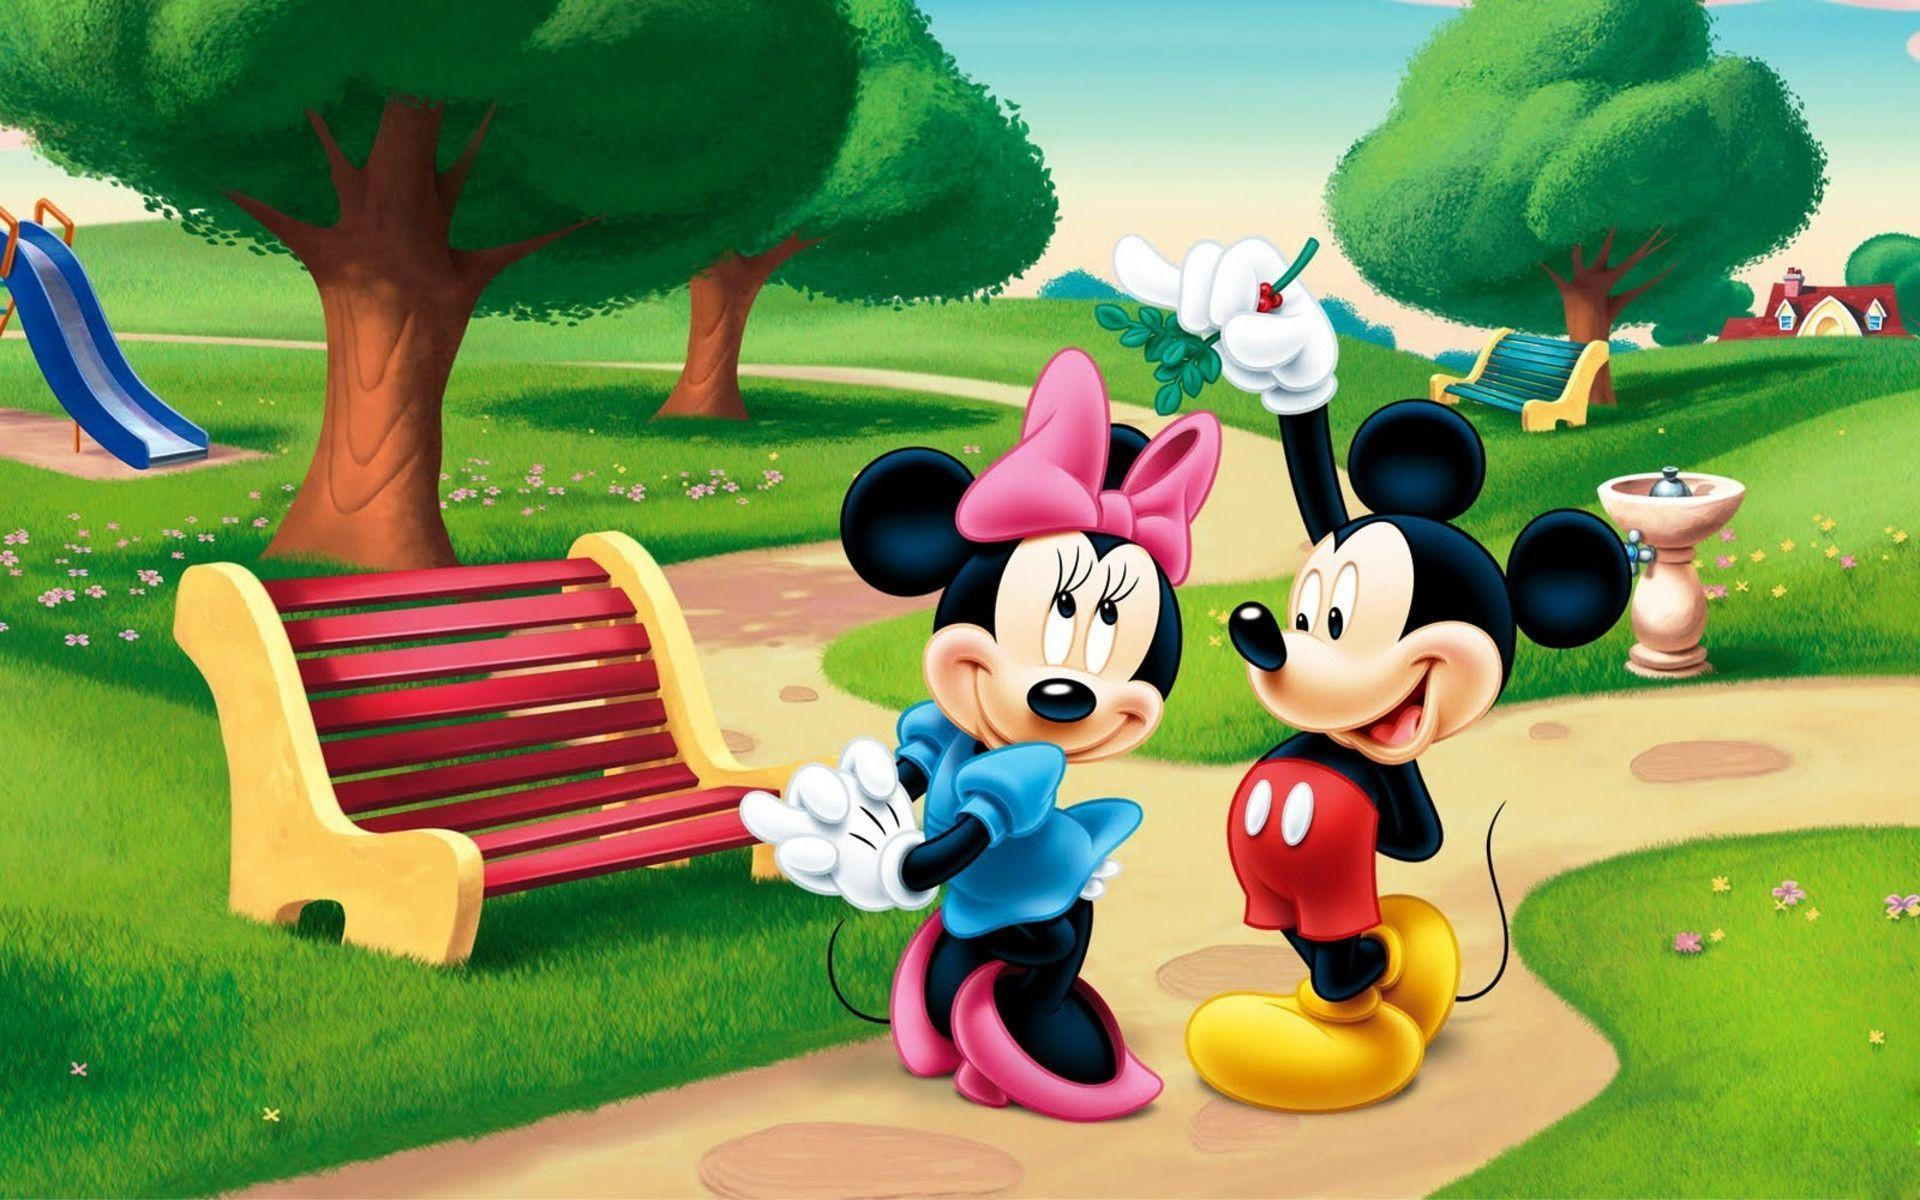 disney 3d hd wallpapers 1080p - photo #1